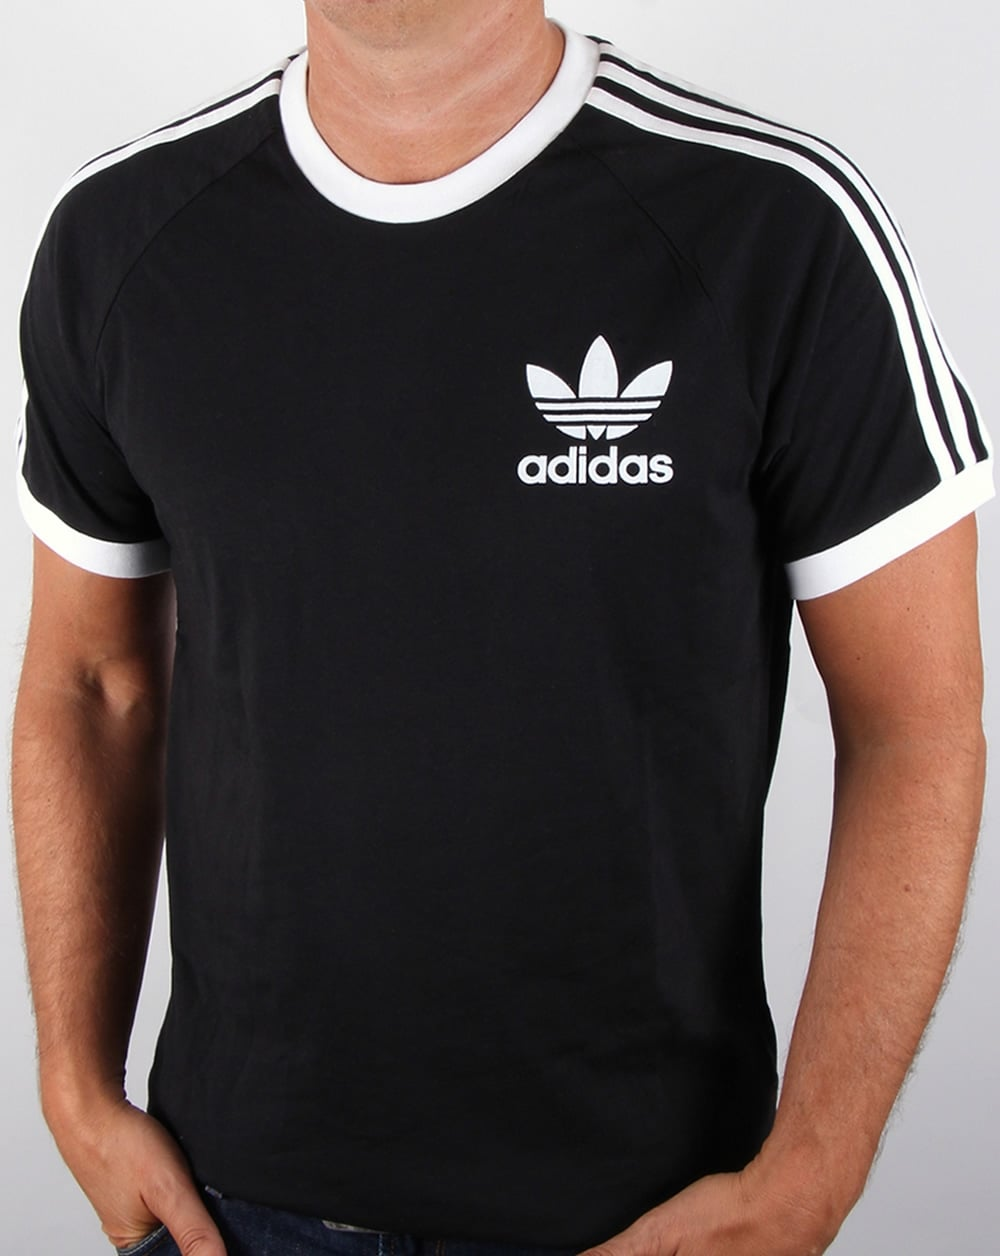 adidas originals retro 3 stripes t shirt black california. Black Bedroom Furniture Sets. Home Design Ideas